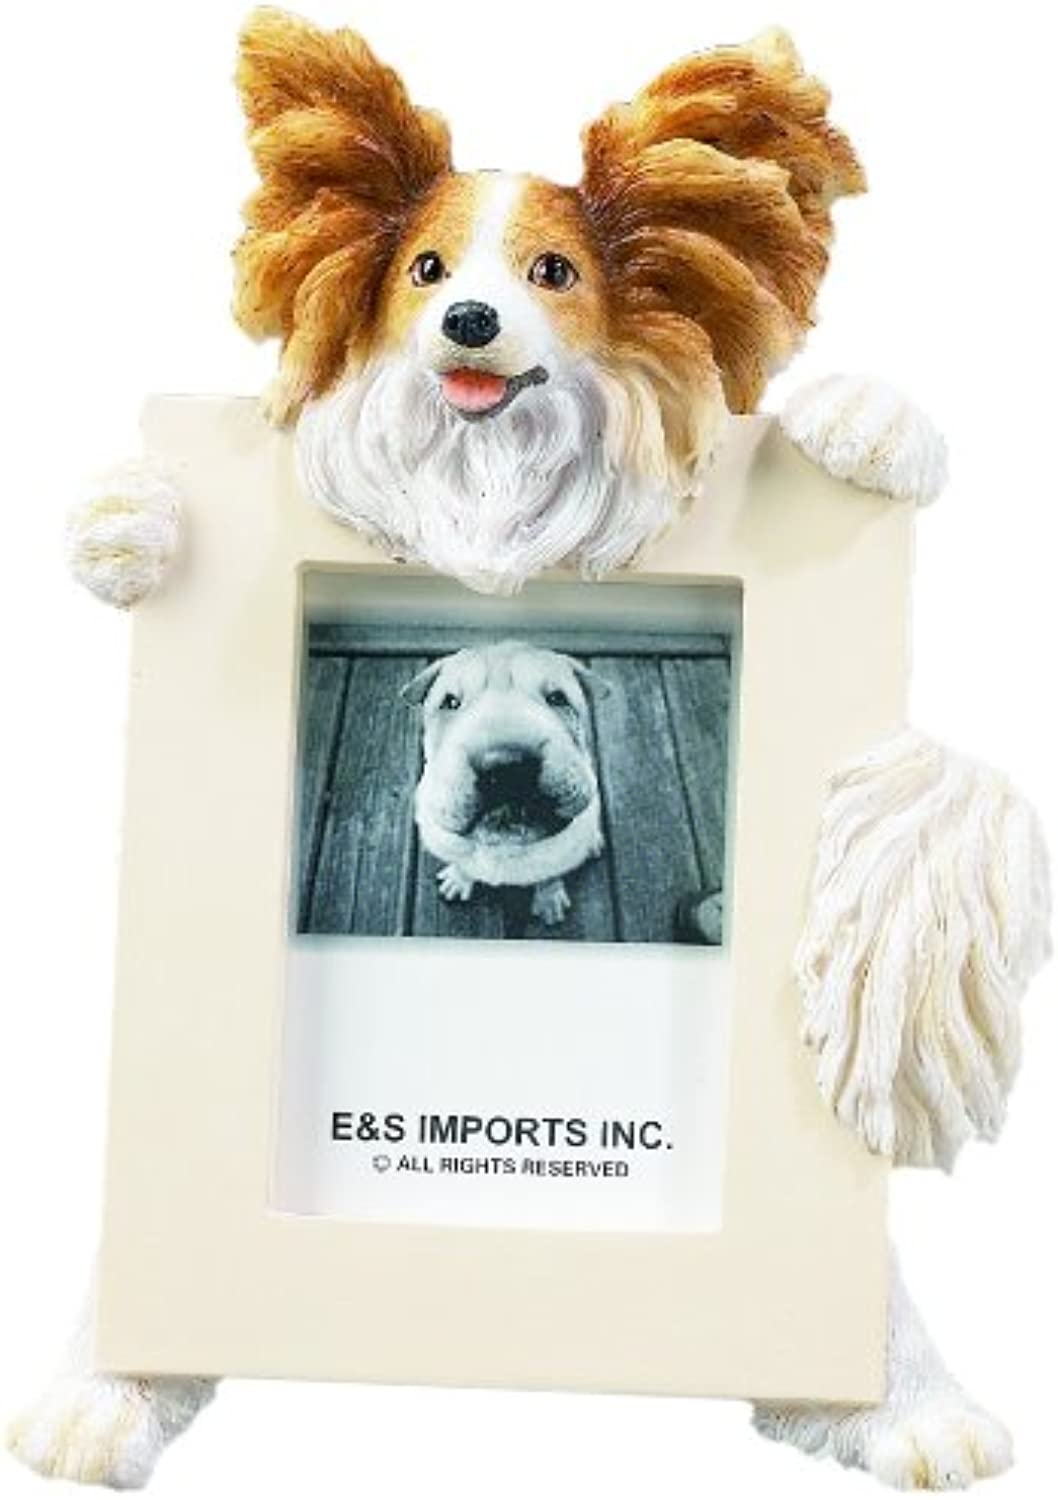 Papillion Picture Frame Holds Your Favorite 2.5 by 3.5 Inch Photo, Hand Painted Realistic Looking Papillion Stands 6 Inches Tall Holding Beautifully Crafted Frame, Unique and Special Papillion Gifts for Papillion Owners